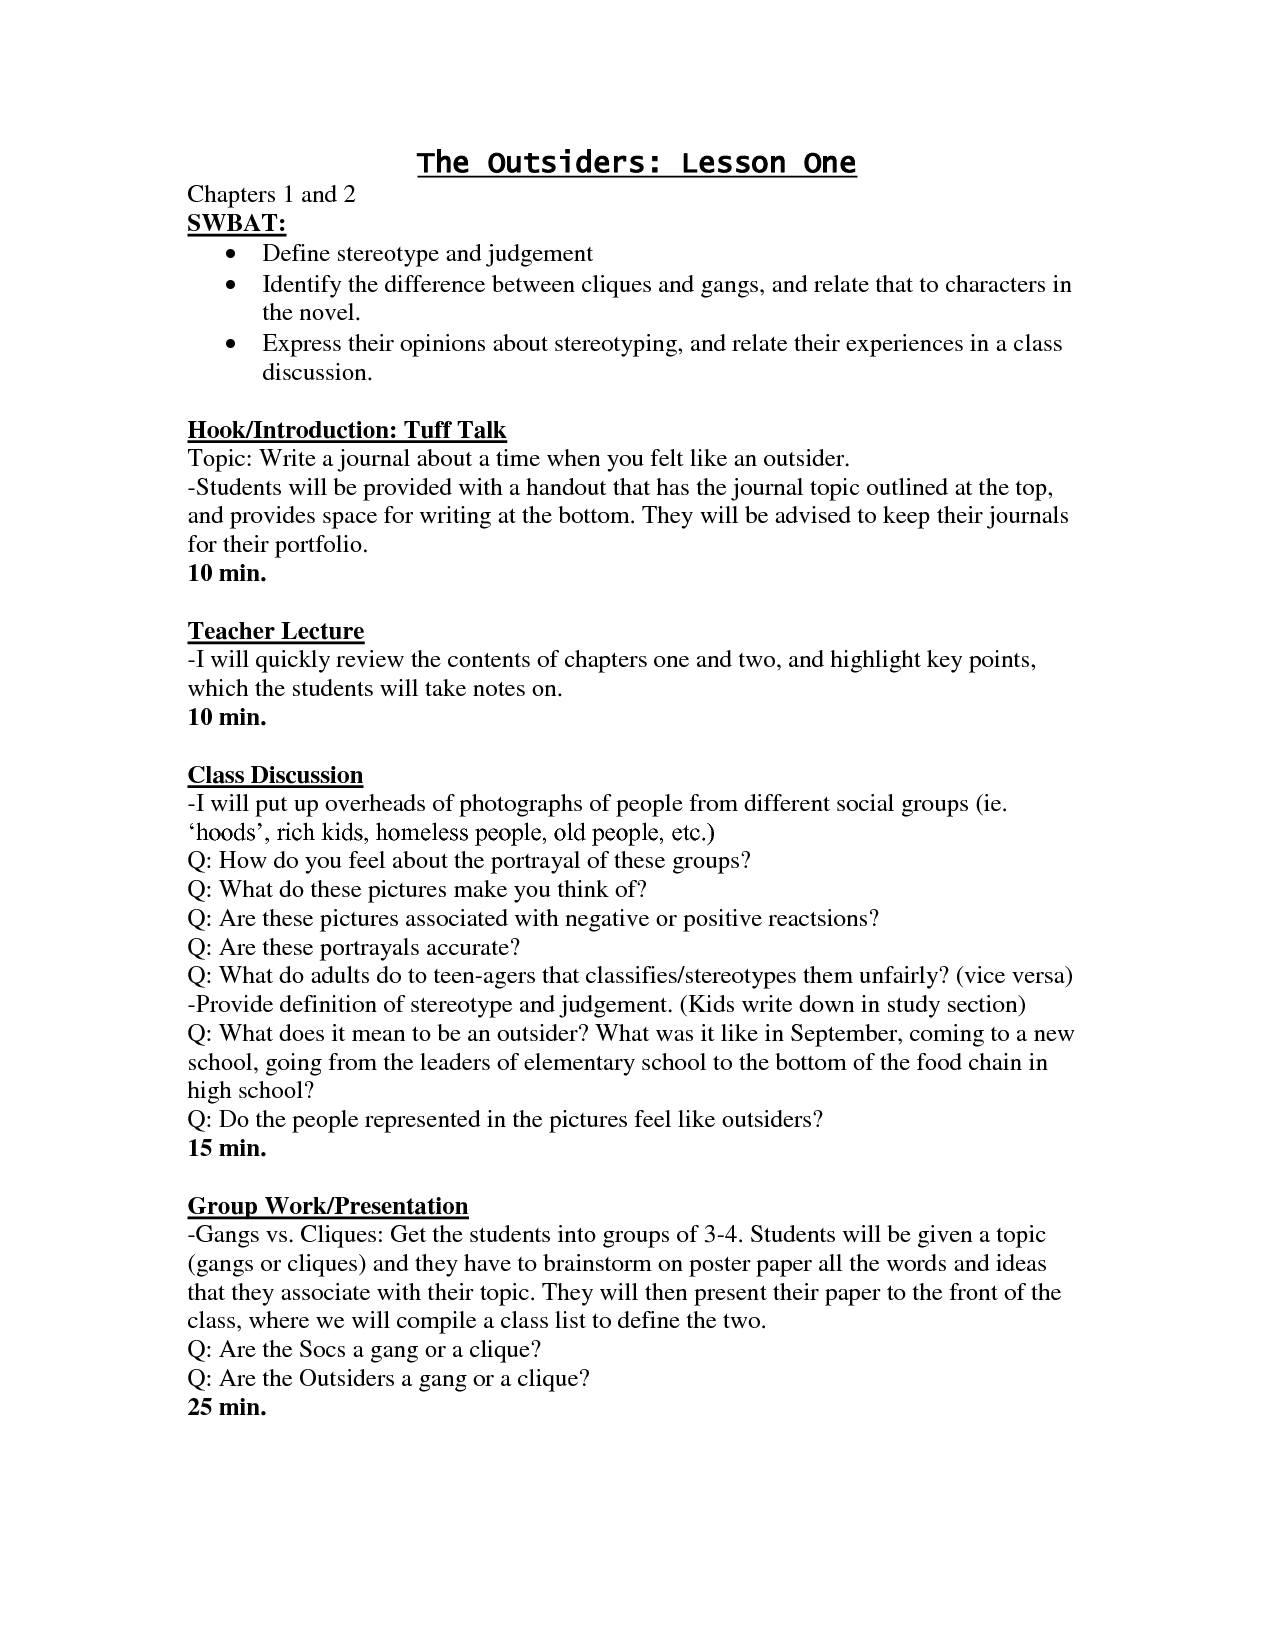 The Outsiders Literature Guide Secondary Solutions Answers